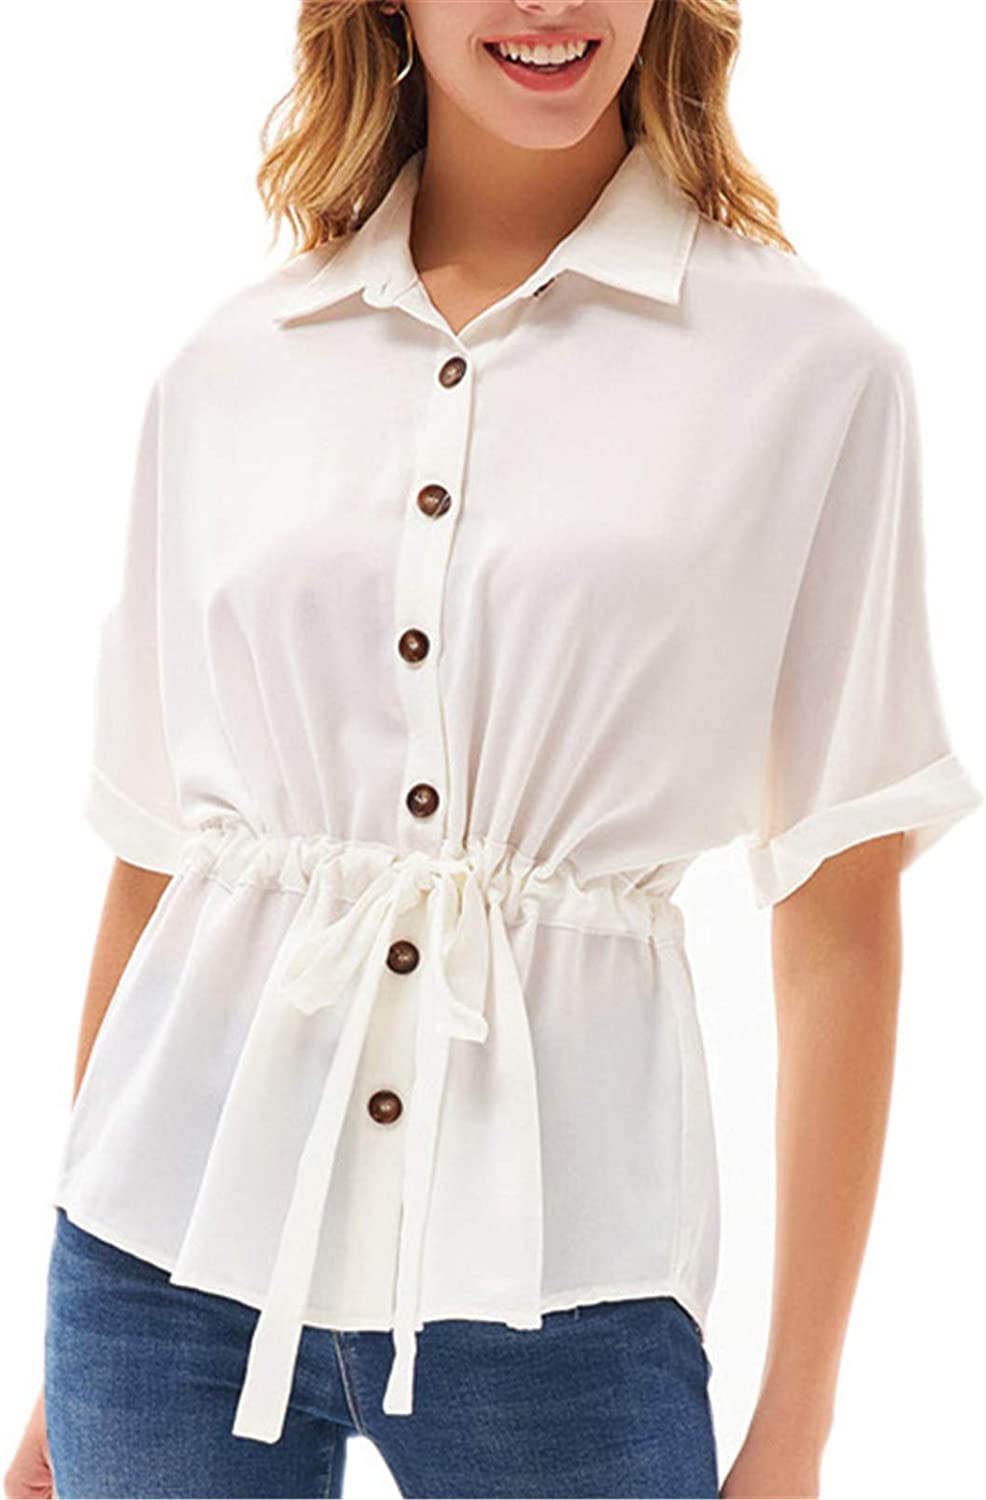 Women's Button Down Shirts Batwing Sleeve V Neck Casual Office Business Blouses Tops White S